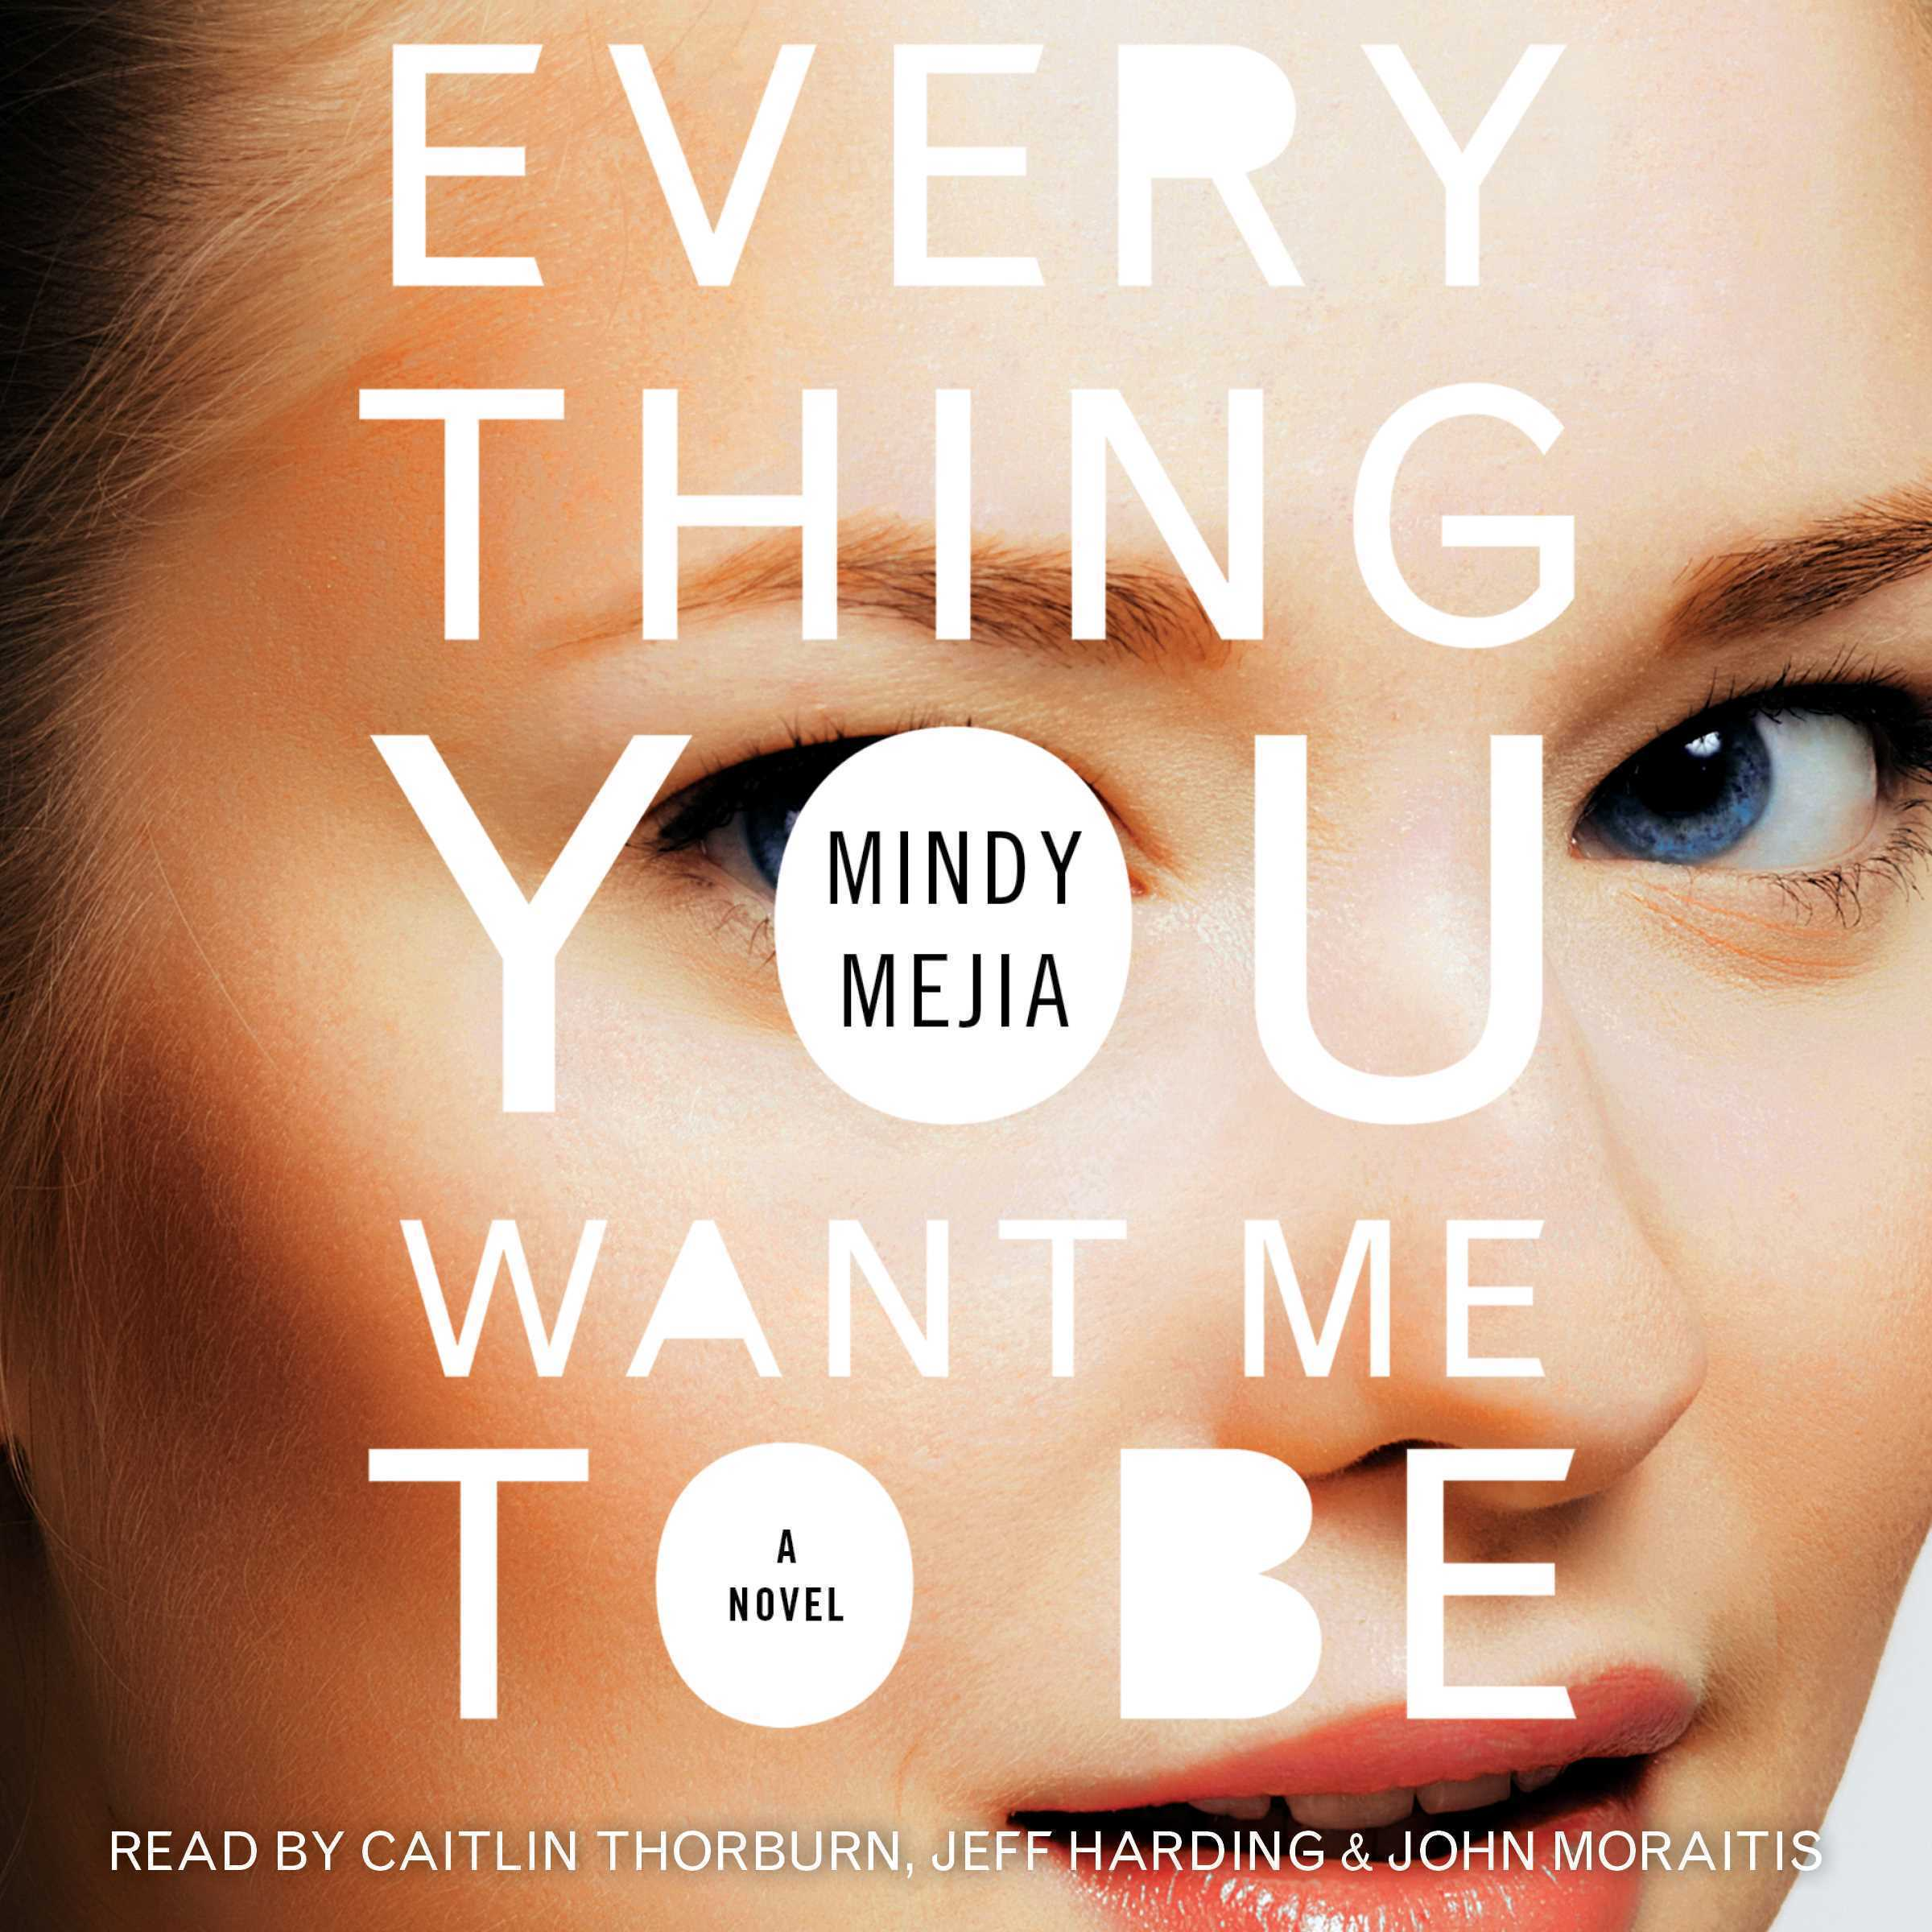 Printable Everything You Want Me to Be: A Thriller Audiobook Cover Art